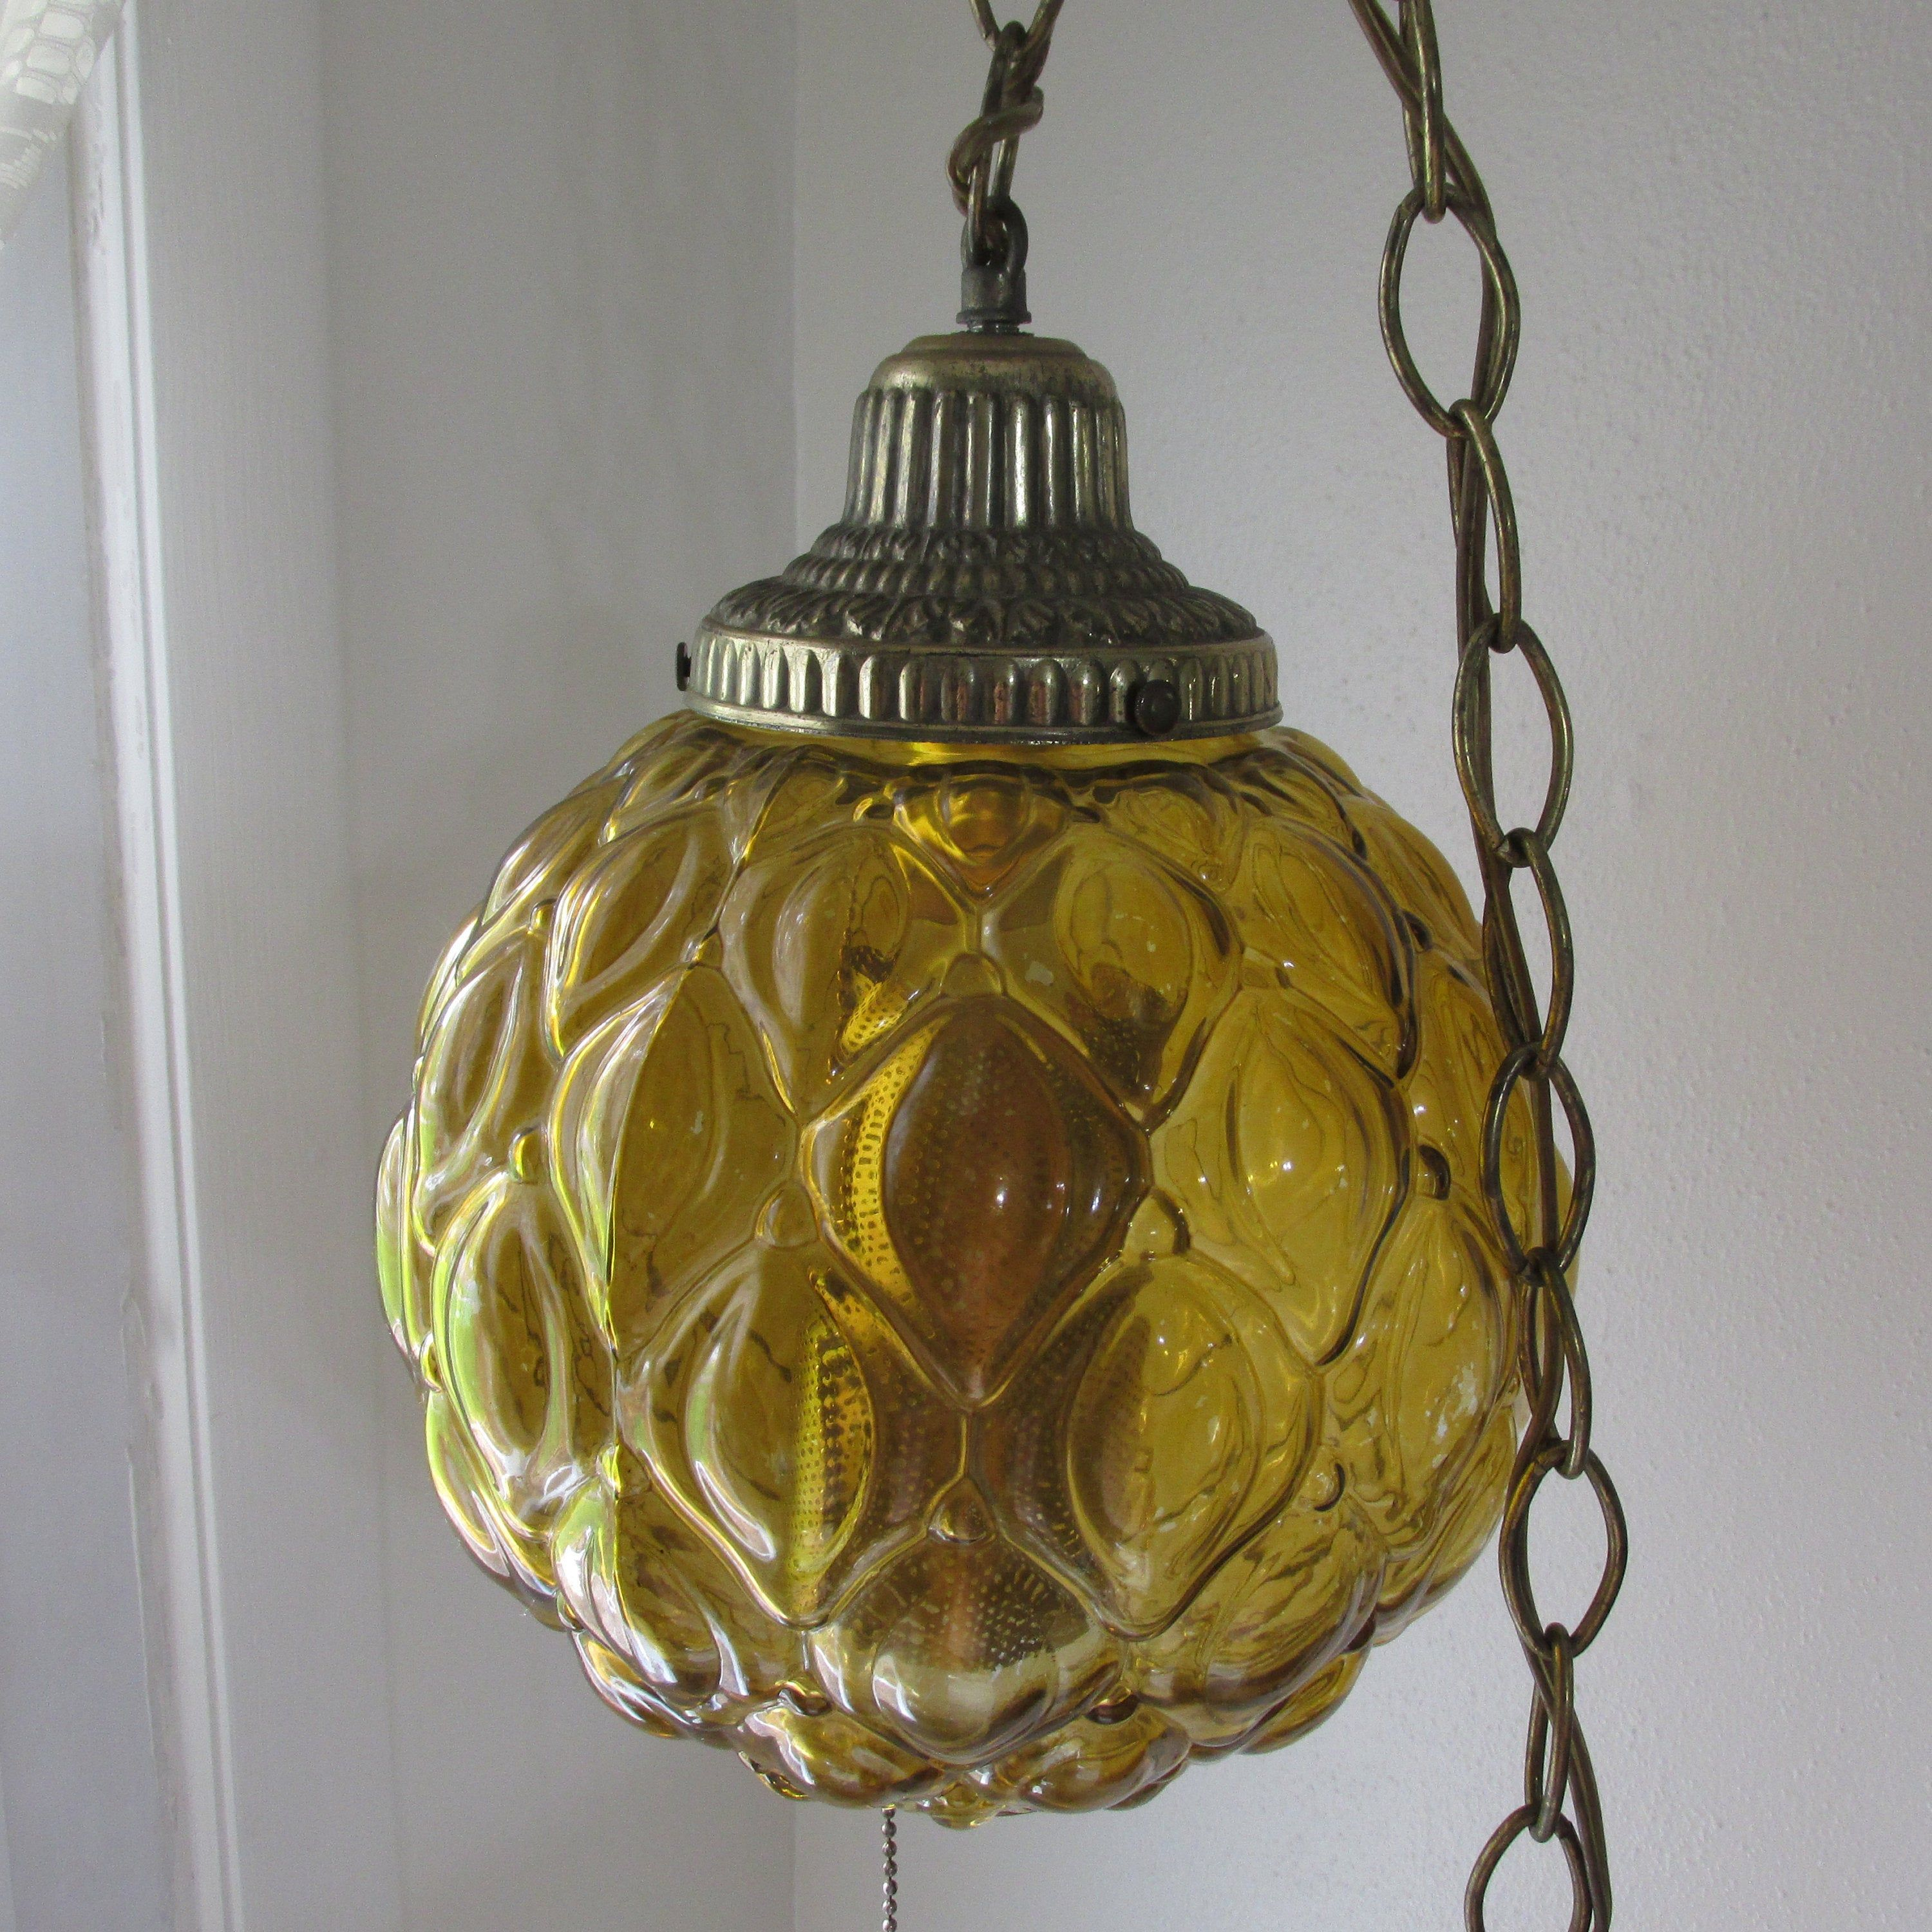 Hanging Swag Lamp Amber Globe Vintage 1970s With Long Chain Etsy Swag Lamp Pull Chain Etsy Shipping